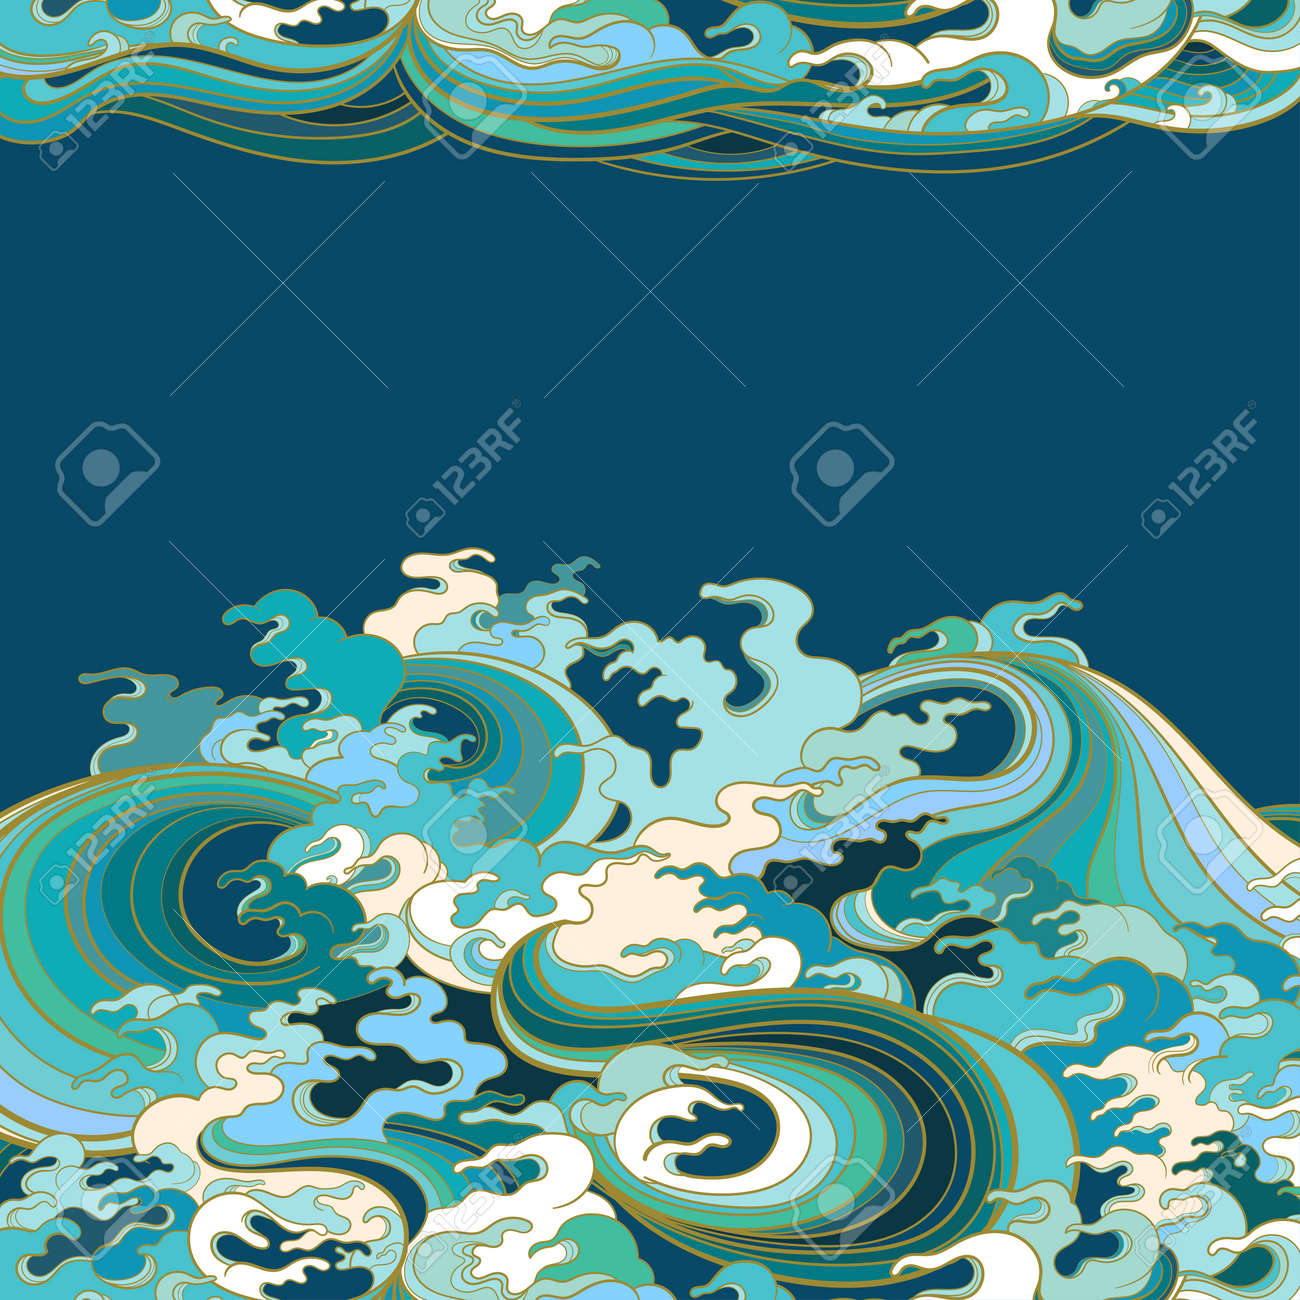 Vector background with waves in traditional oriental style. - 170091945